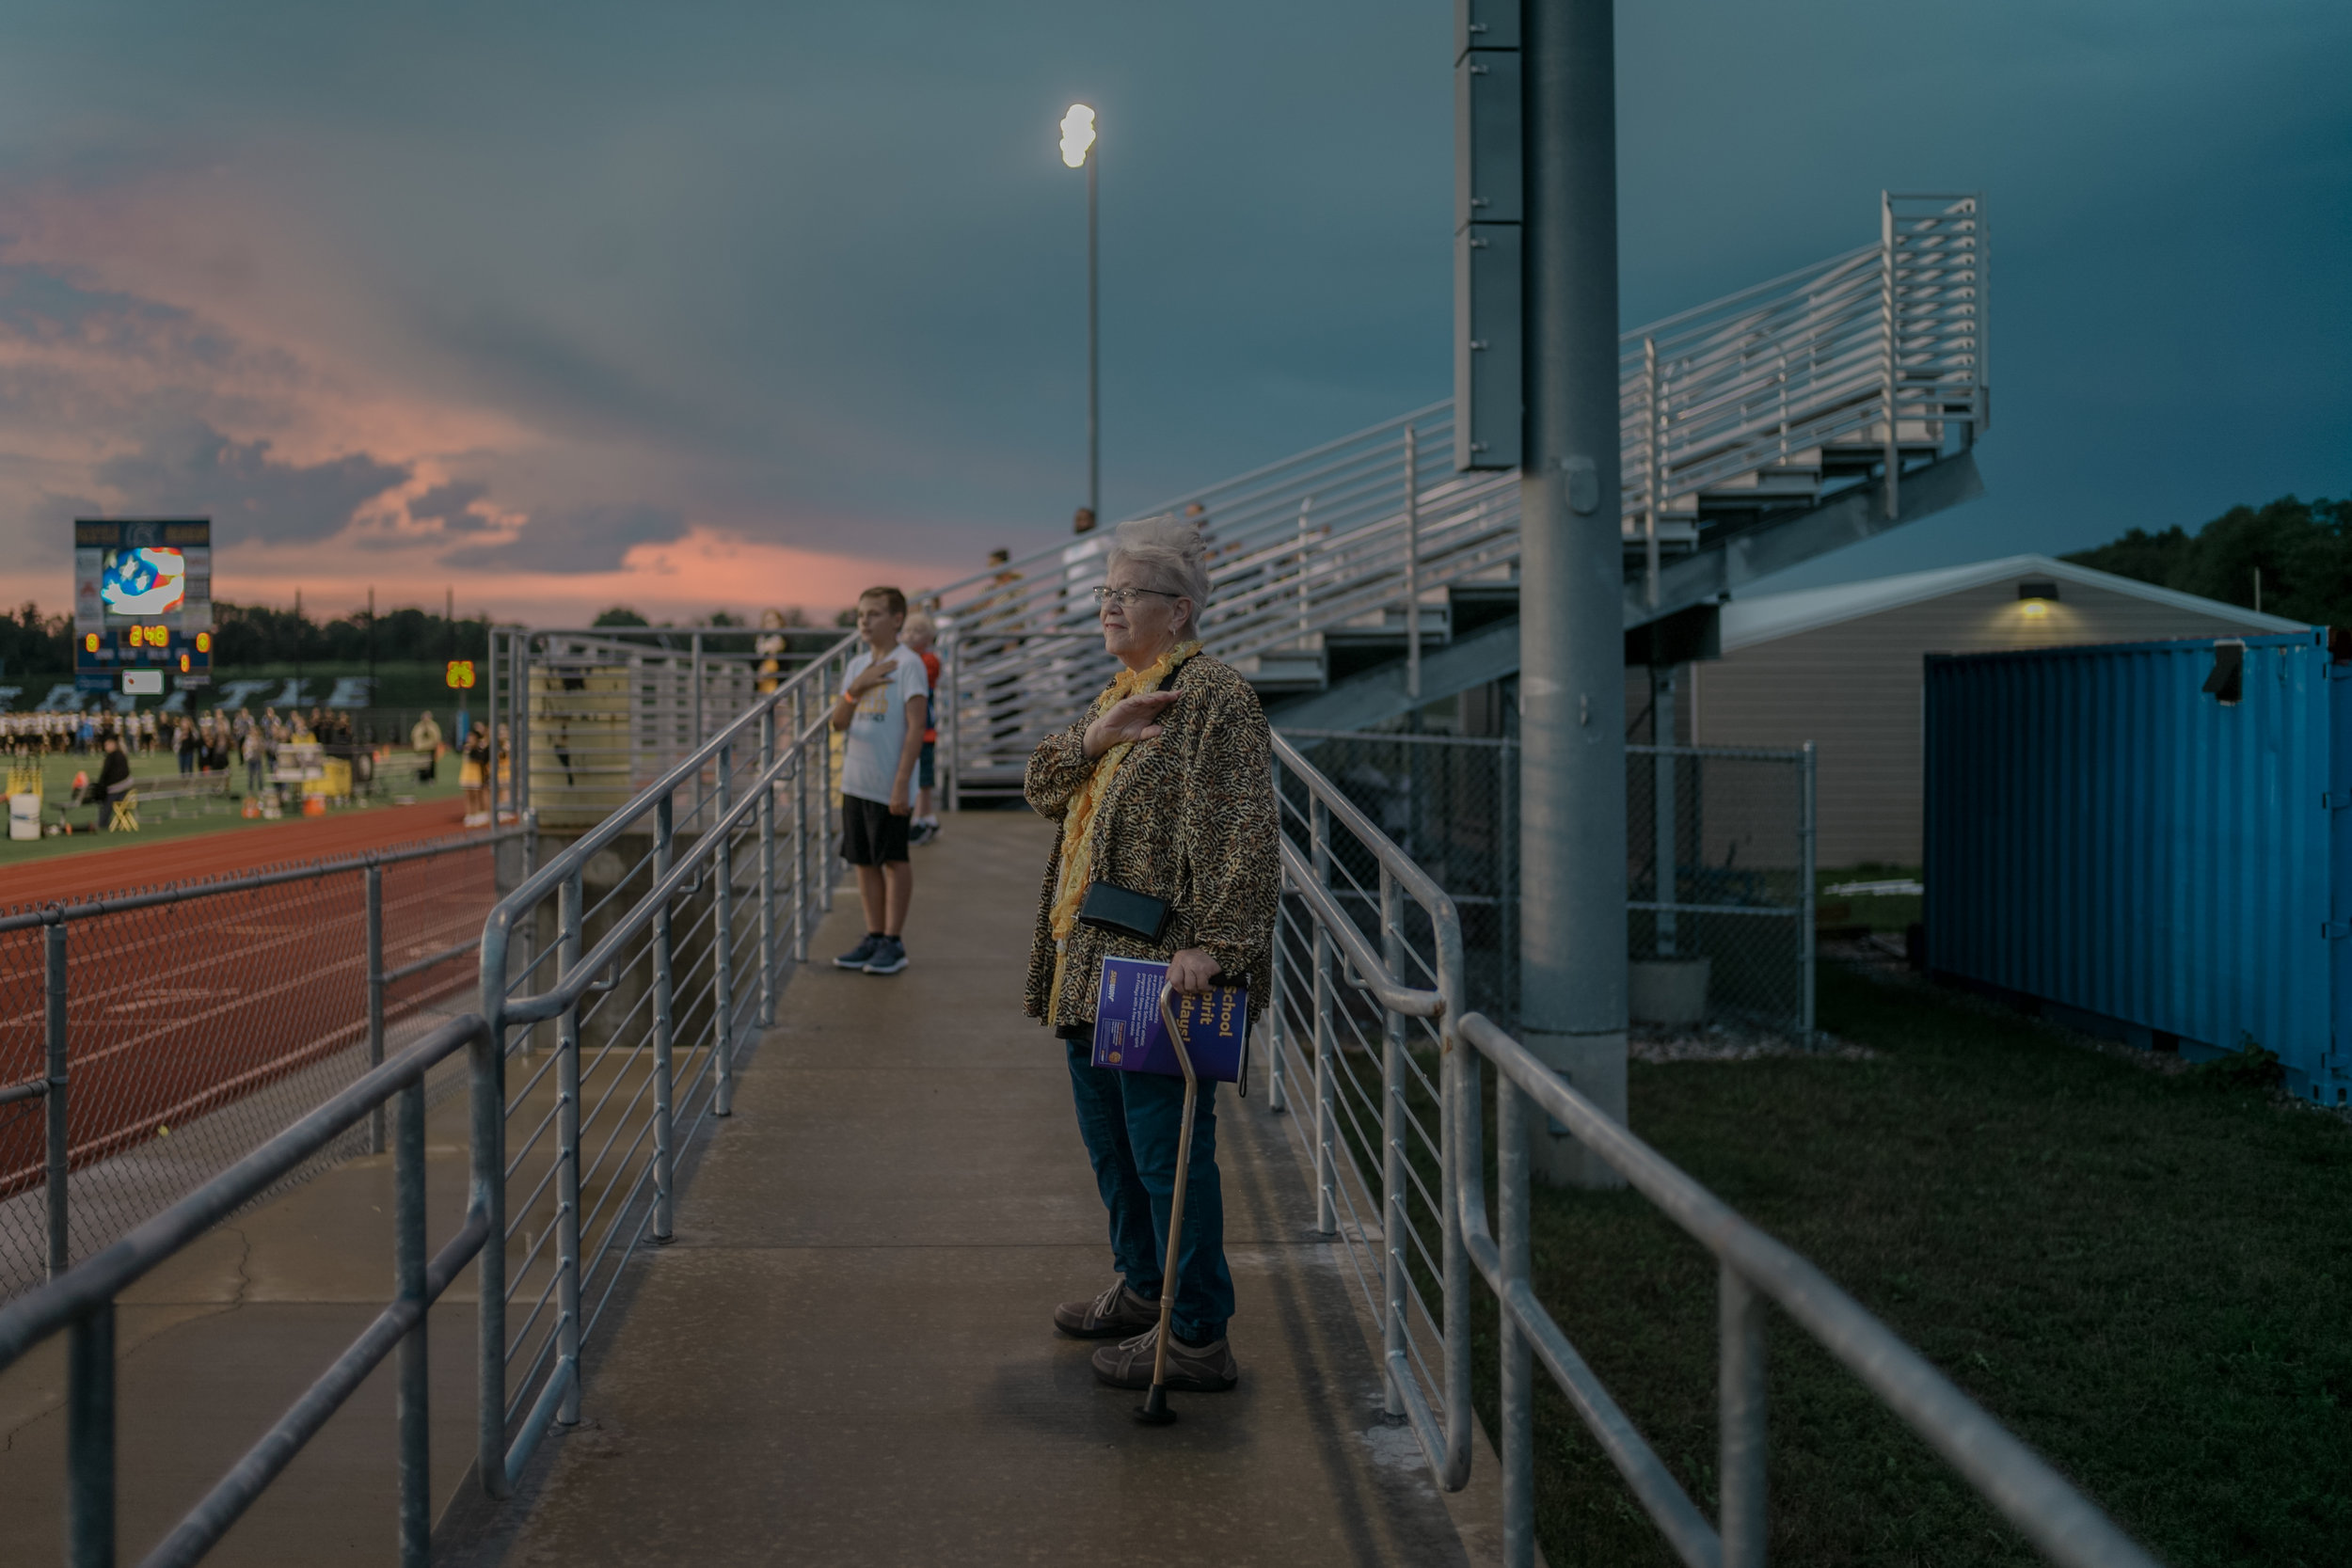 Janis Green holds her hand on her heart as the Muriel Battle High School band plays the National Anthem at a game against Smith-Cotton High School on Friday, August 31, 2018 at Battle. Green, a 1964 alumnus of Smith-Cotton, says she came to watch her grandson, Nate McFail, who is a safety for Smith-Cotton.